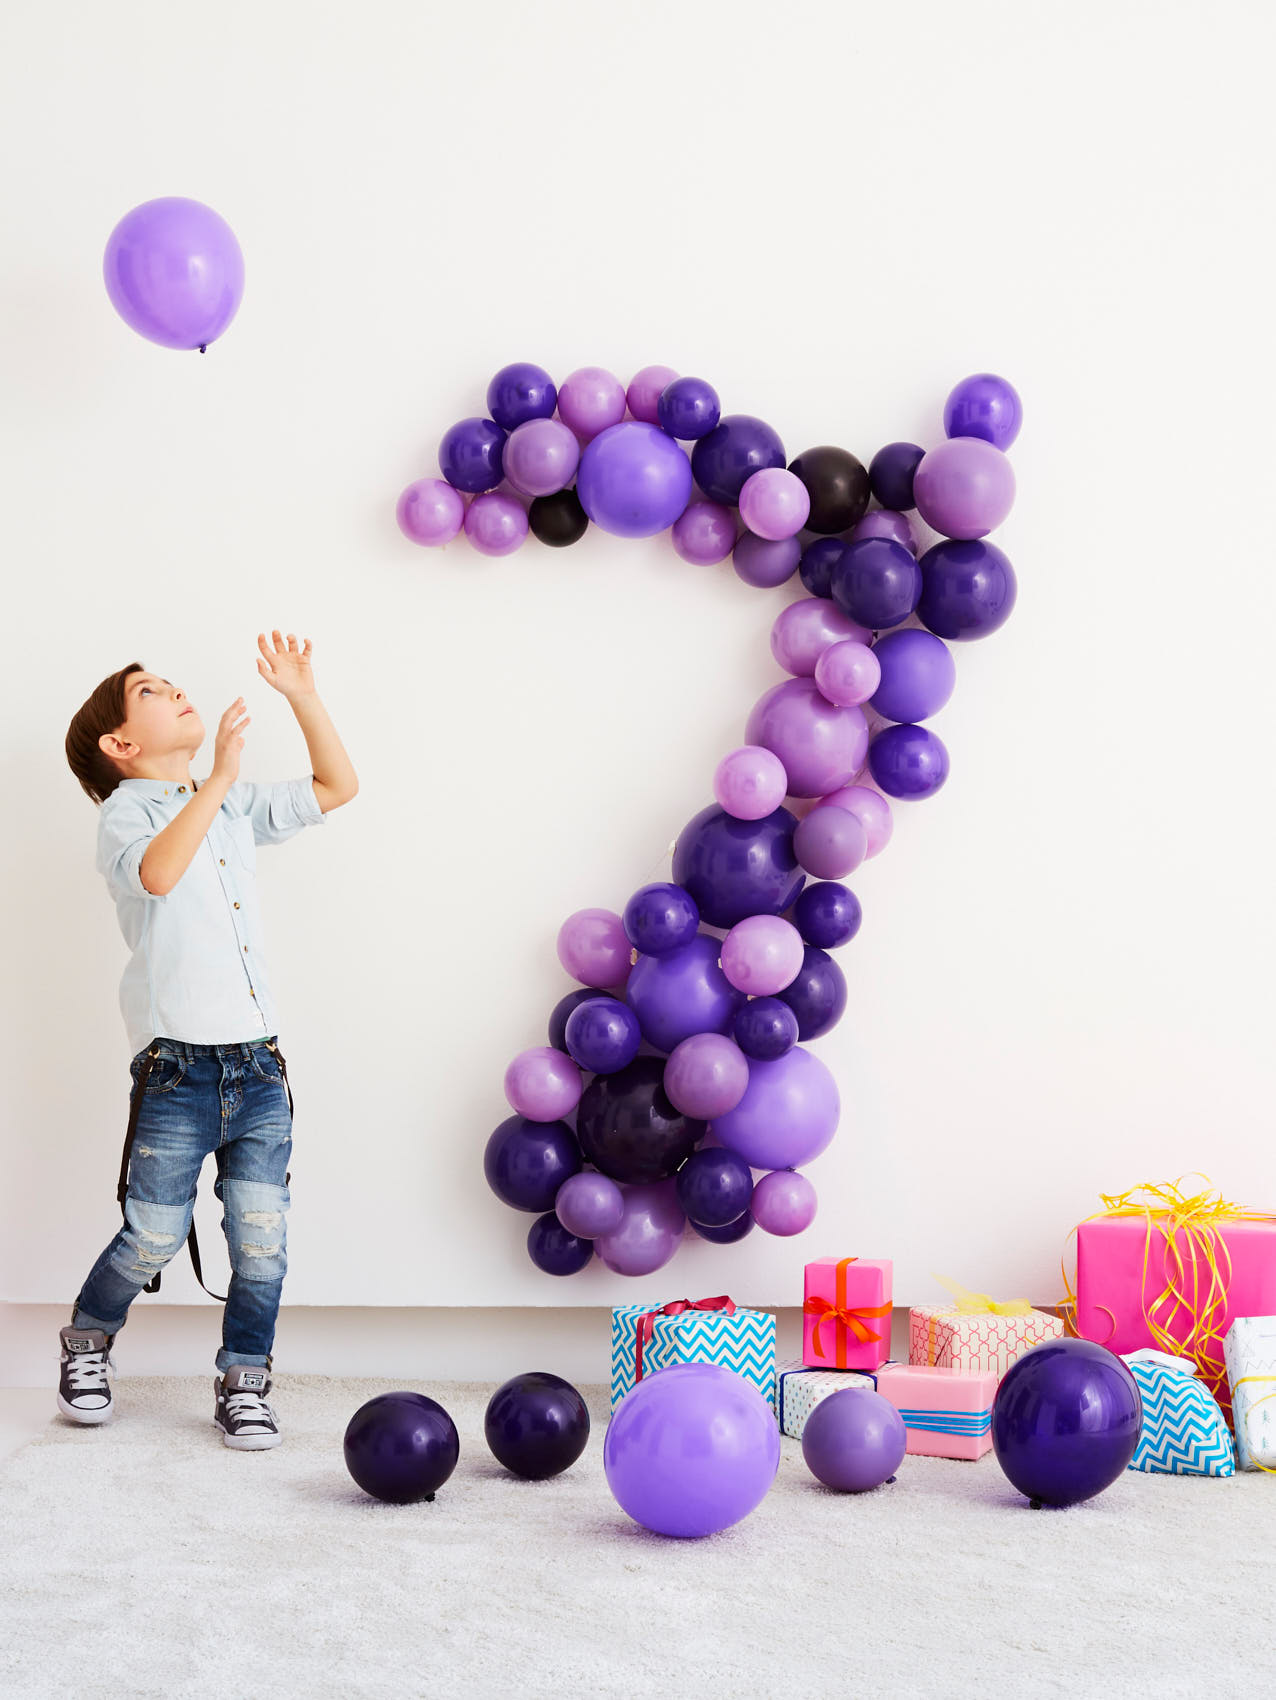 balloon-numbers-4896-w